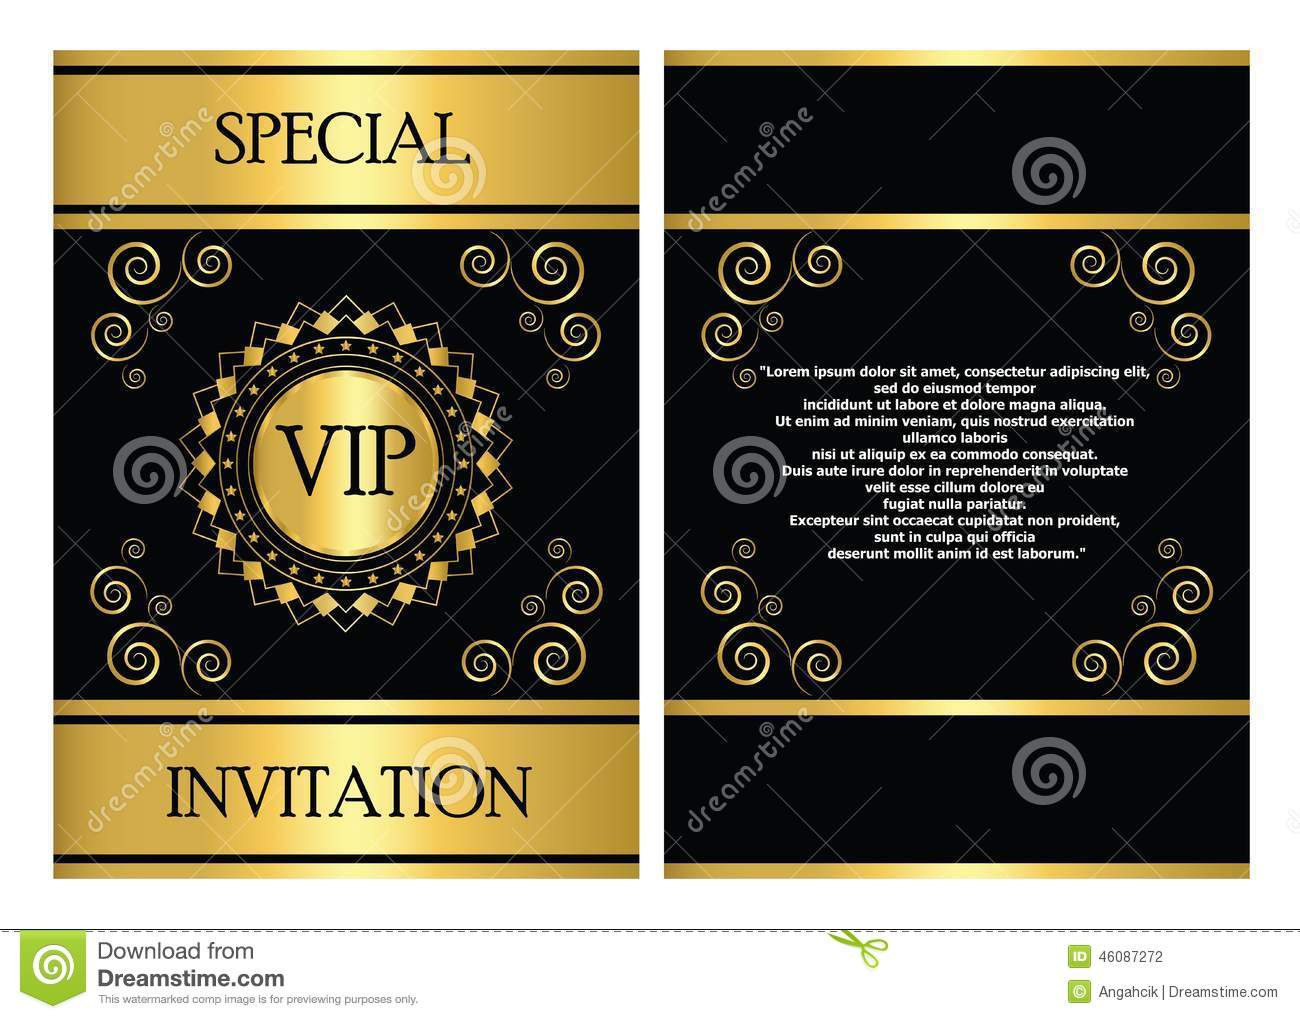 VIP Invitation Card Template Stock Vector Illustration Of Company - Corporate party invitation template